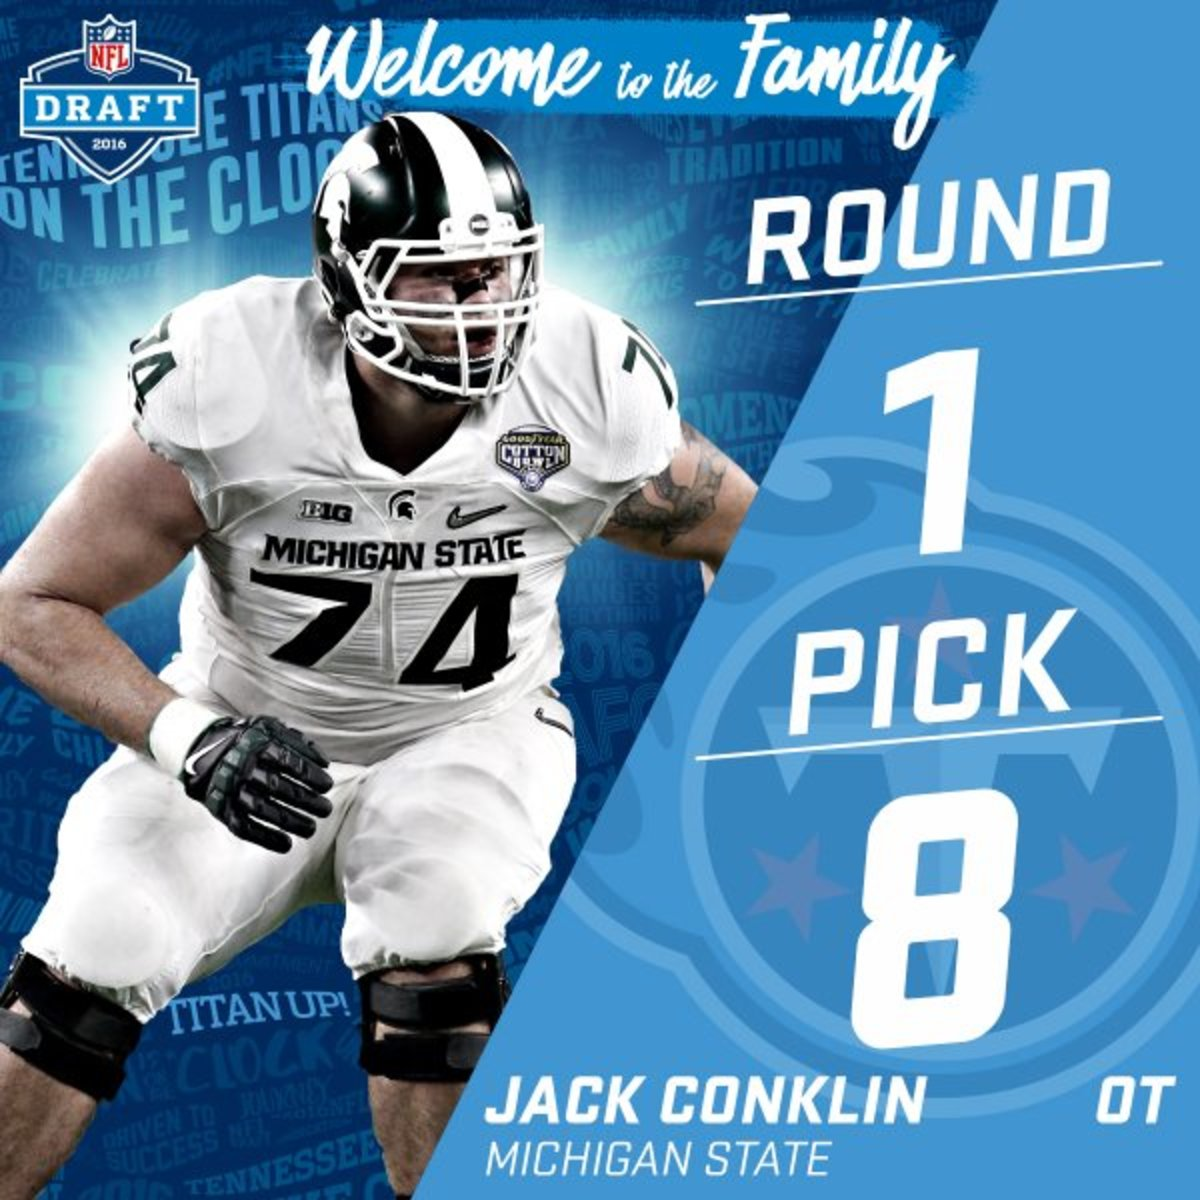 Jack Conklin picked #8 in the 2016 NFL draft by the Titans.  Photo courtesy of the NFL.